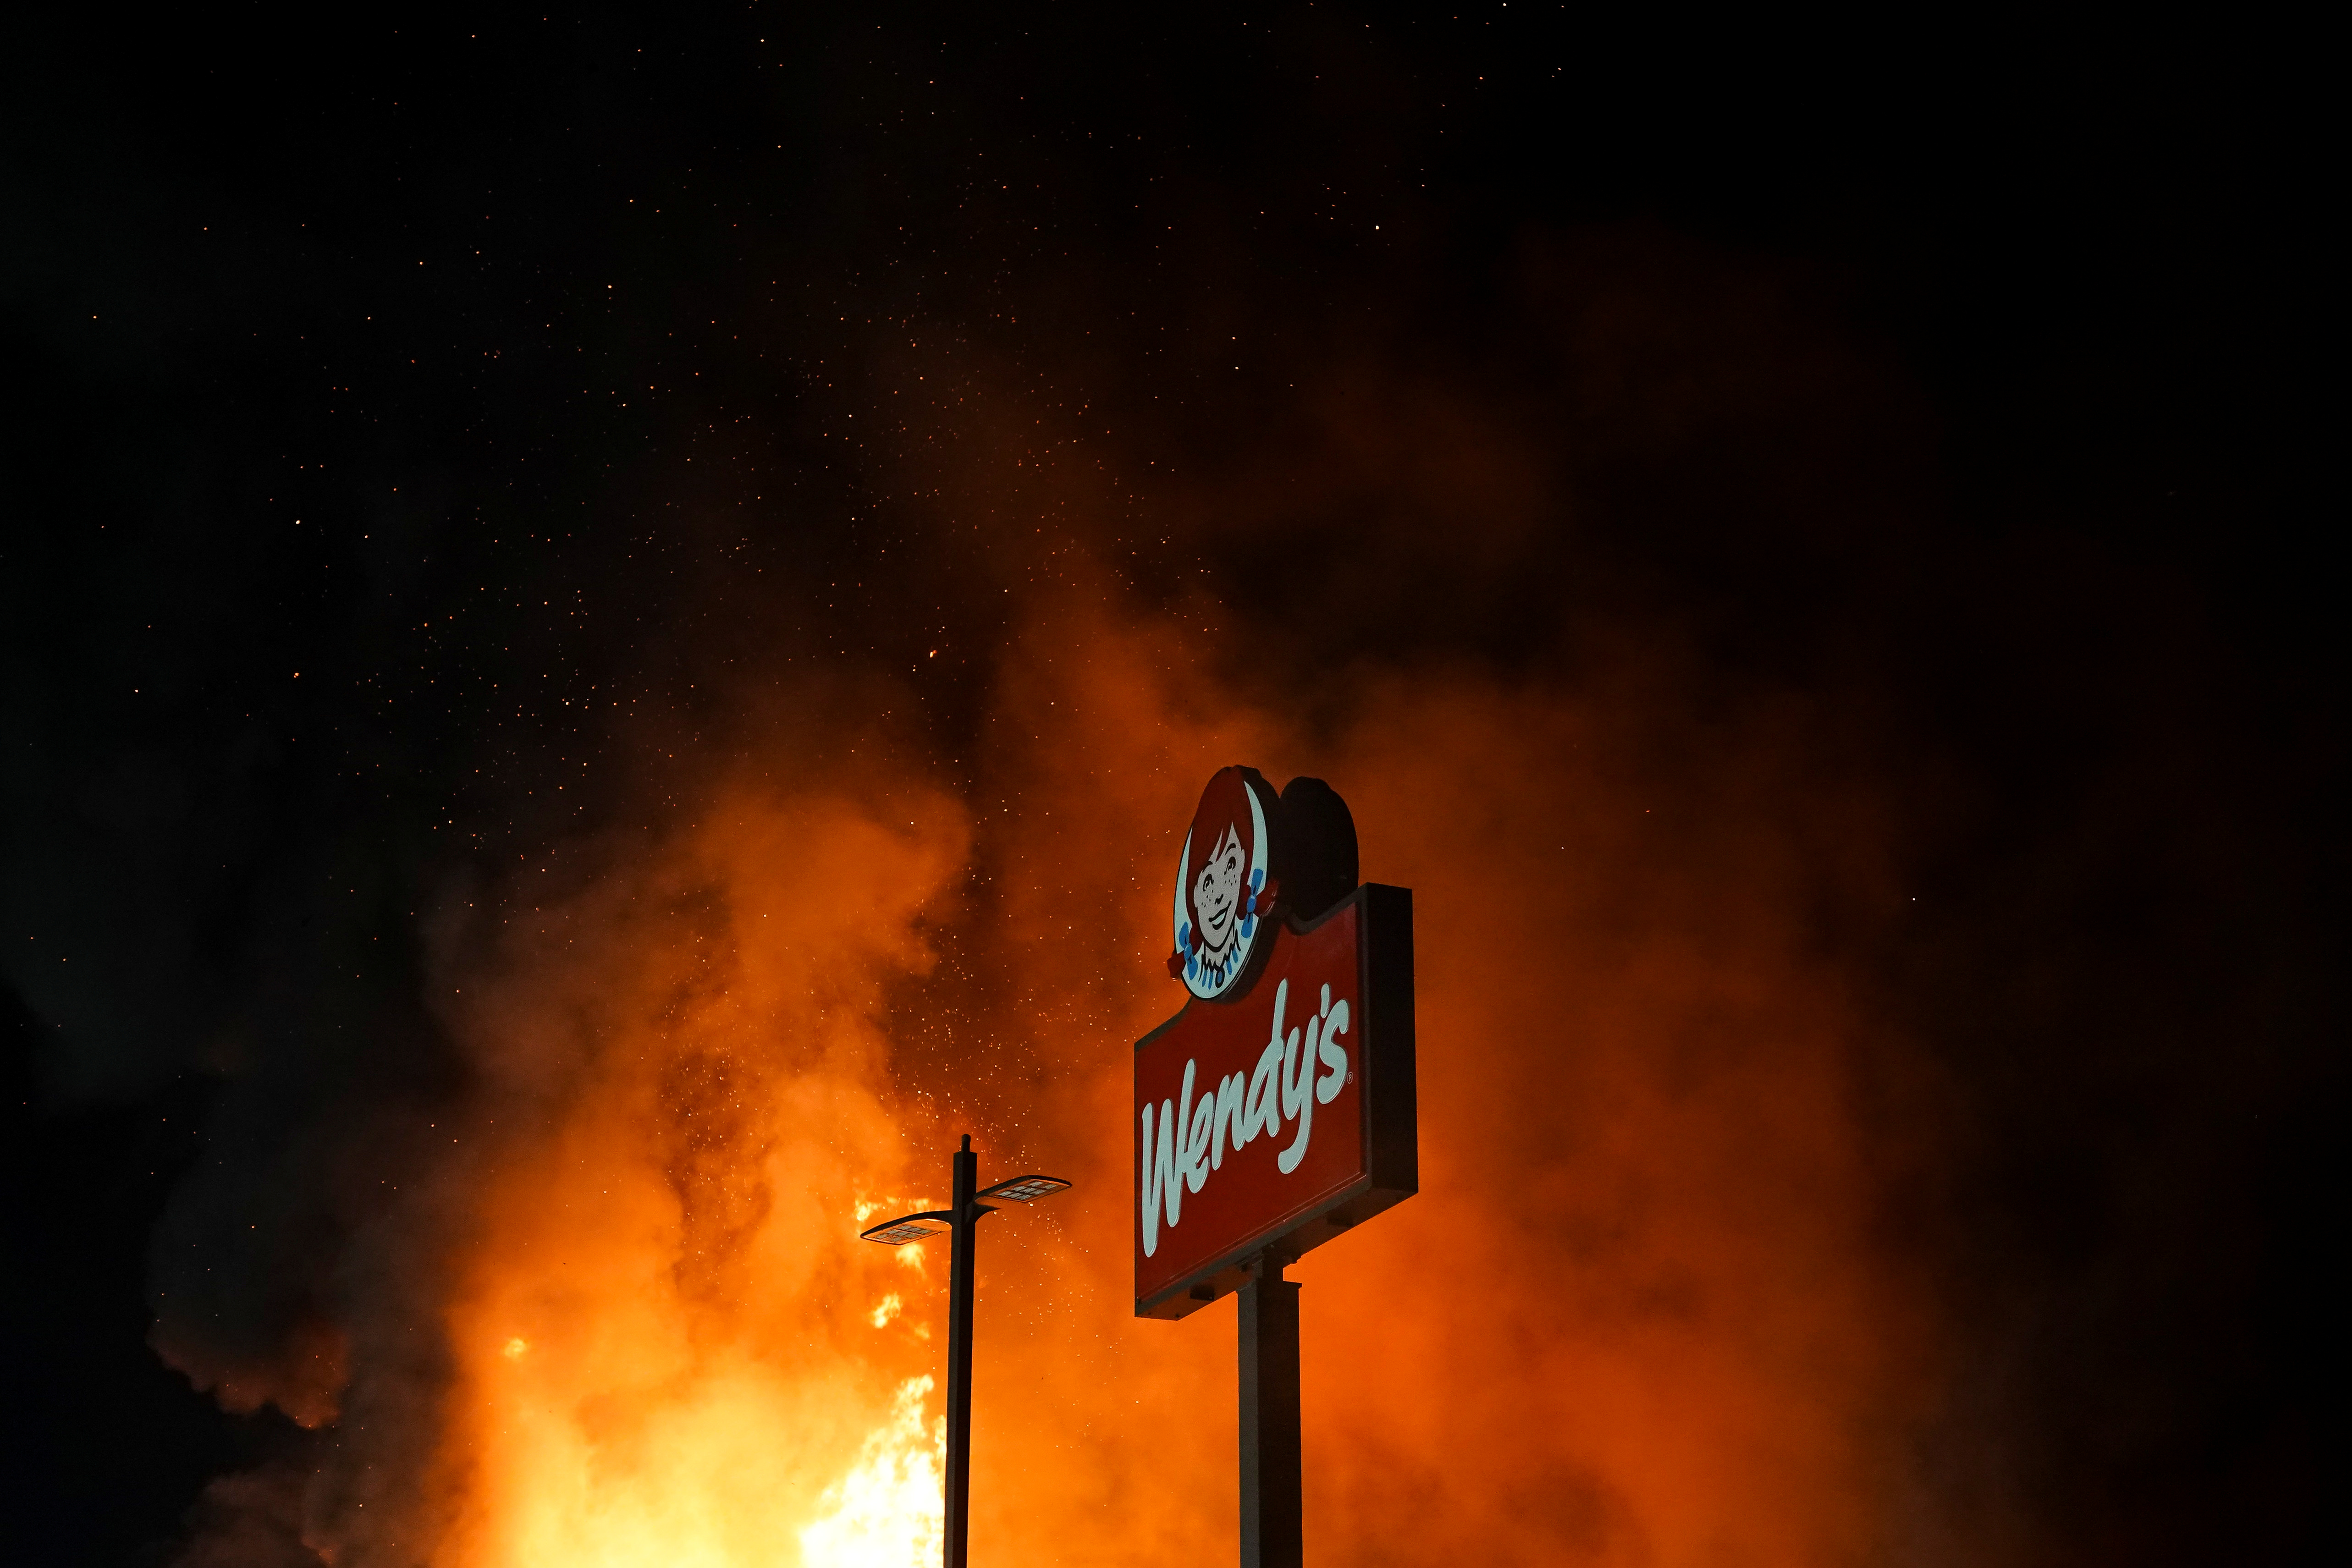 A Wendy's burns following a rally against racial inequality and the police shooting death of Rayshard Brooks, in Atlanta, Georgia, U.S. June 13, 2020. REUTERS/Elijah Nouvelage